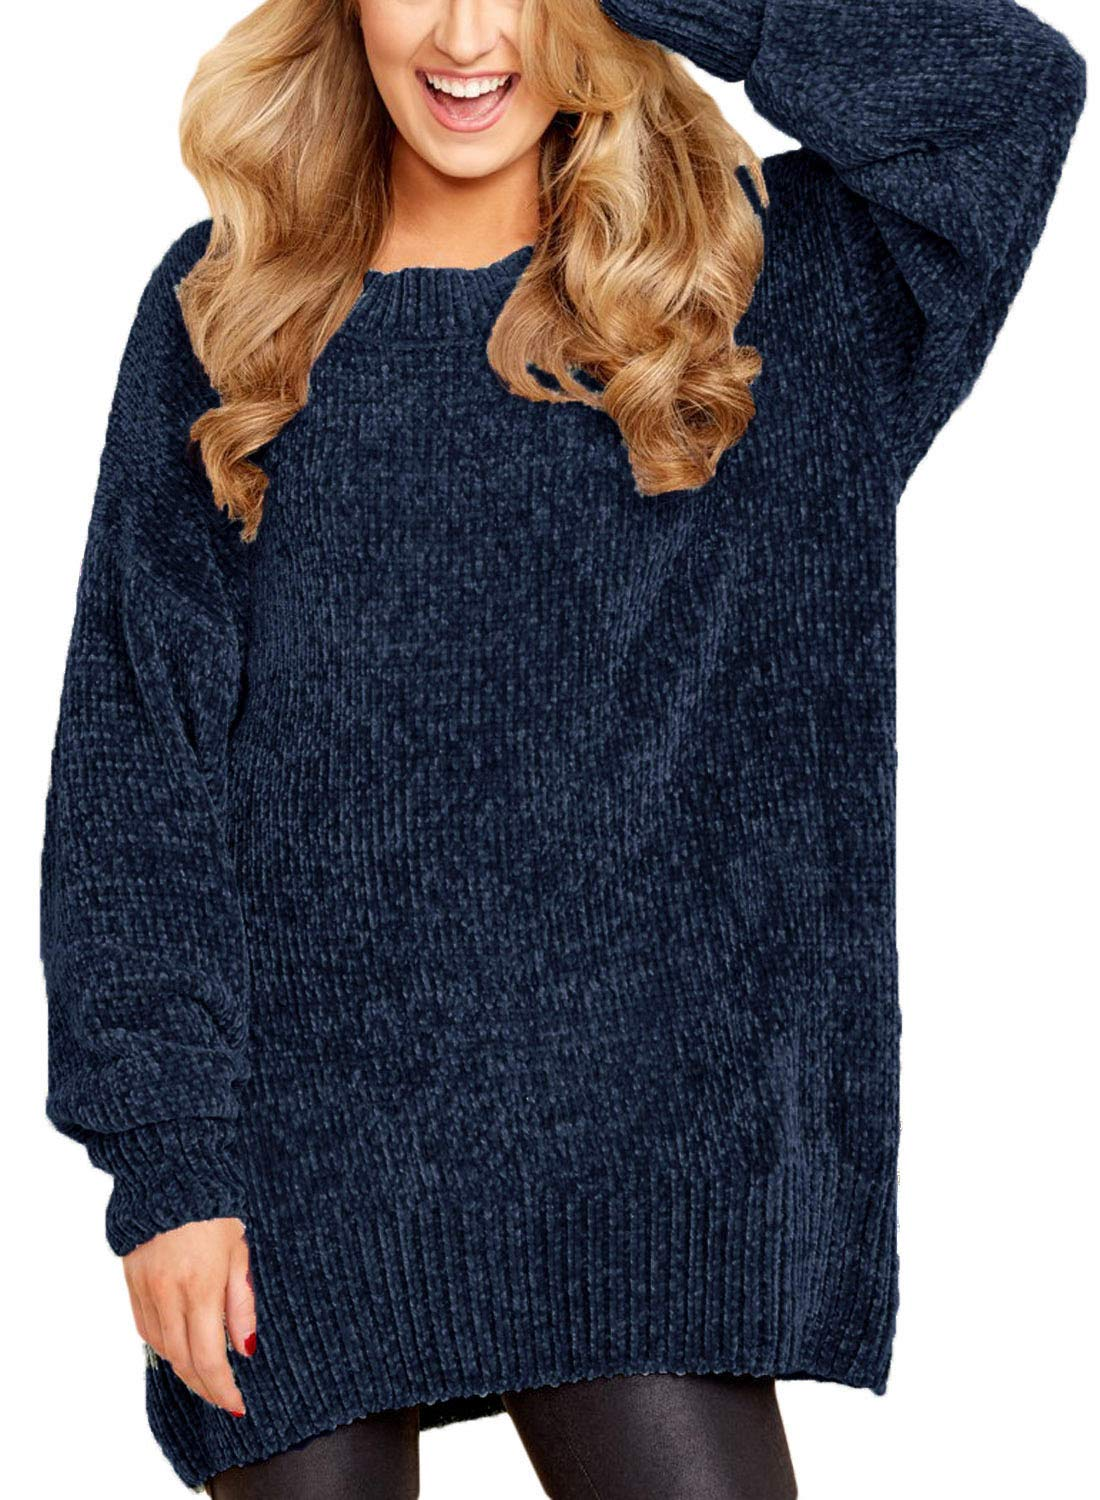 HOTAPEI Women Sweaters Casual Oversized Baggy Velvet Knitted Long Sleeve Pullover Sweaters Women Plus Size Loose Blue 2XL